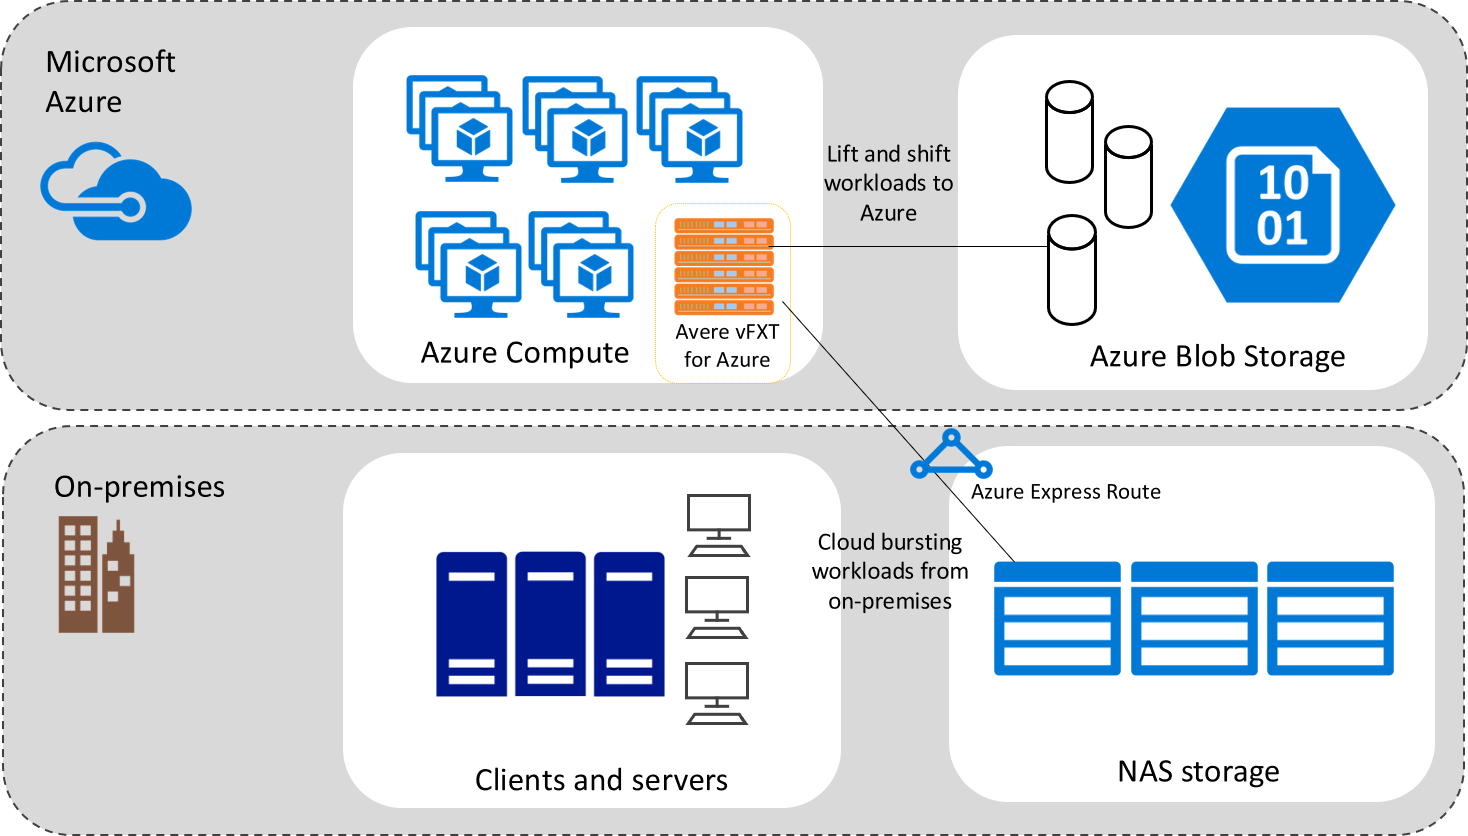 Solution diagram showing Hybrid Cloud with Avere vFXT for Azure